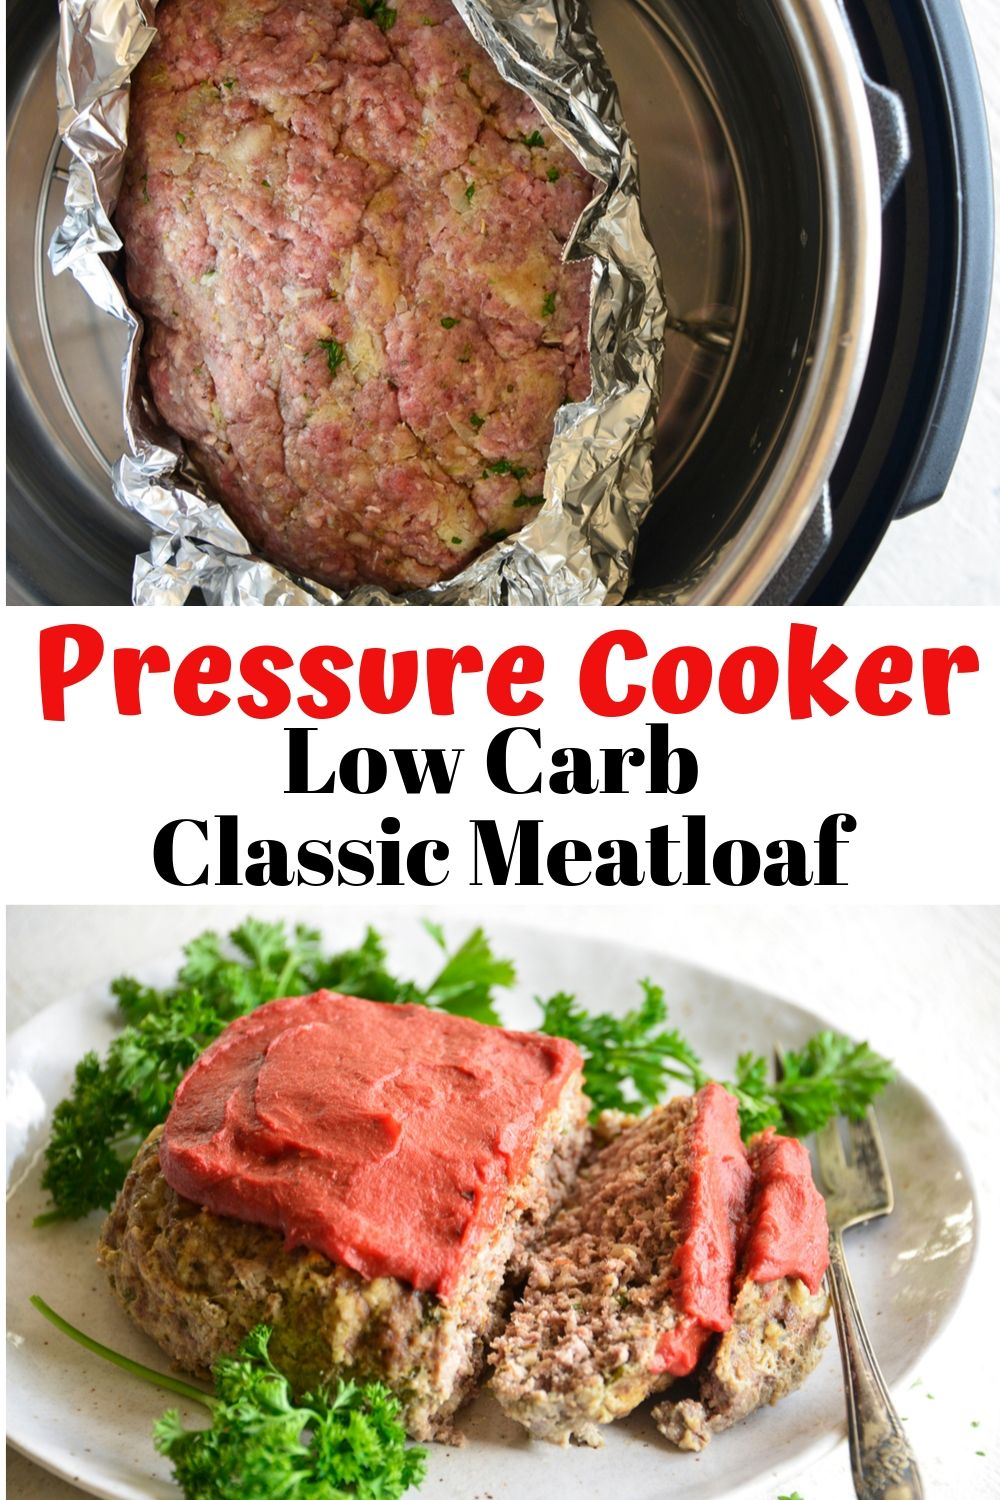 Classic Pressure Cooker Meatloaf. We've brought you a traditional, down home comfort food that is keto friendly AND gluten free.